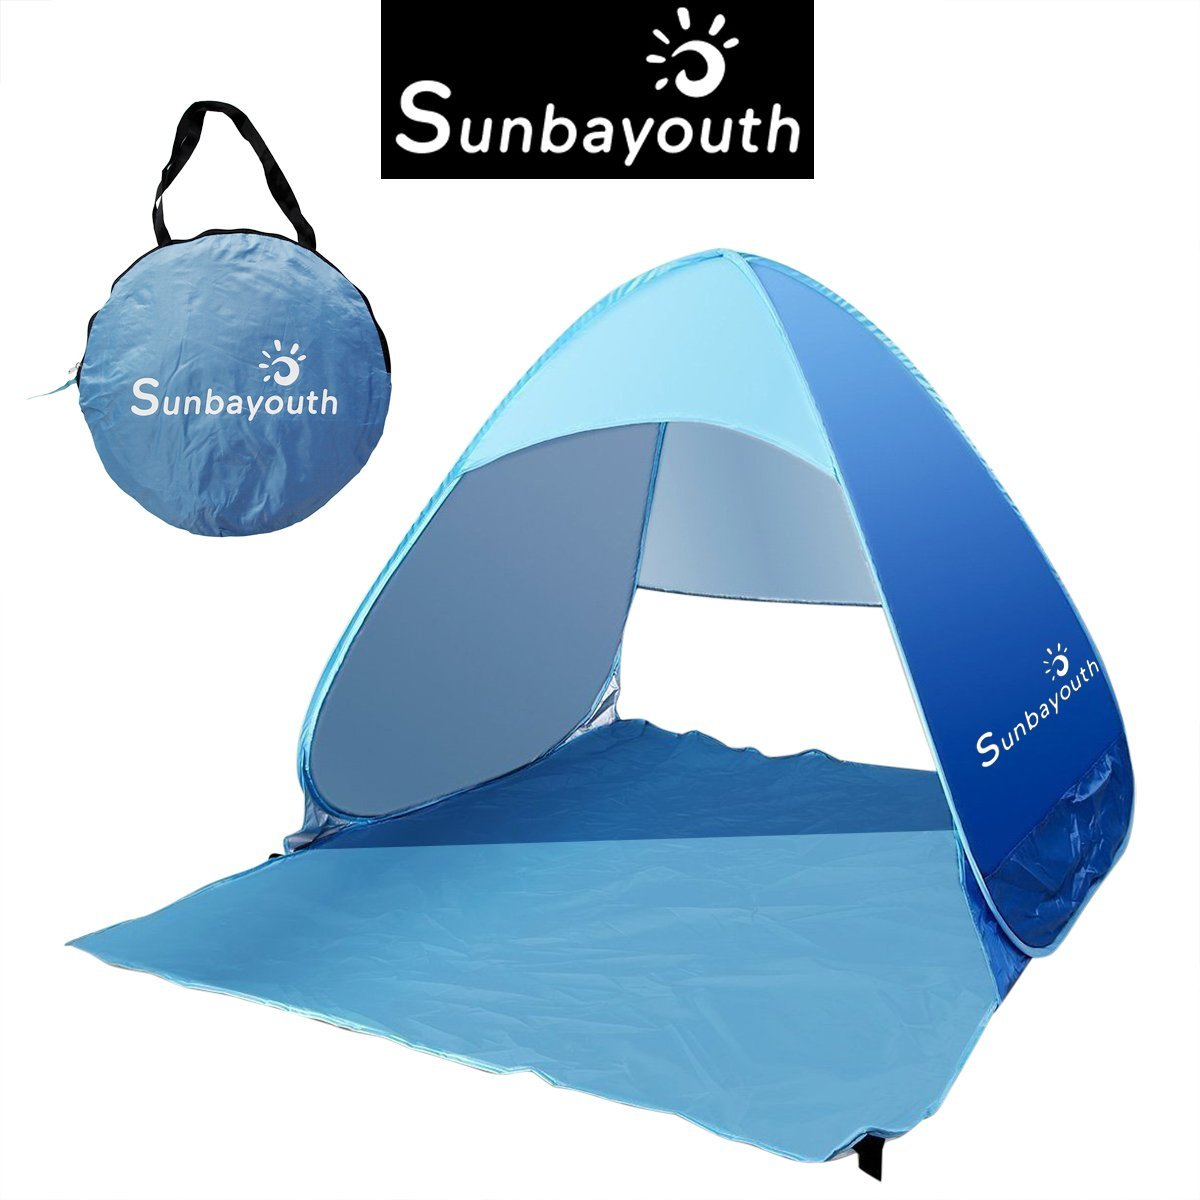 Lightweight Portable Pop Up Beach Tent Sun Shade UV 50+ Protection Canopy Outdoor Automatic Instant Tent Backpacking Sun Shelters - Walmart.com  sc 1 st  Walmart & Lightweight Portable Pop Up Beach Tent Sun Shade UV 50+ Protection ...